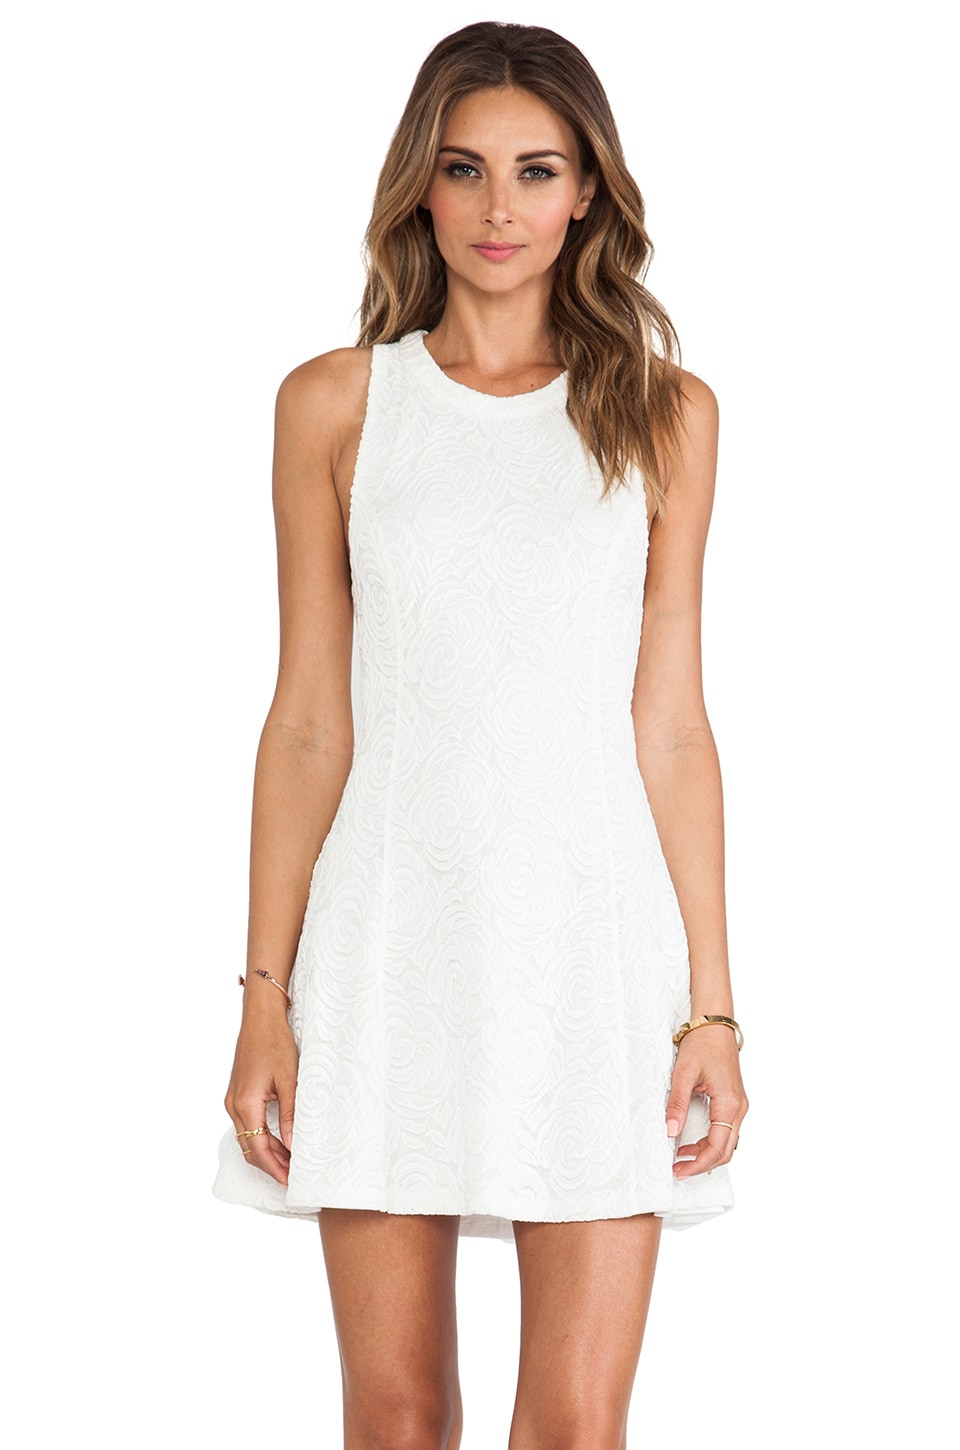 MINKPINK Friday I'm In Love Dress in White